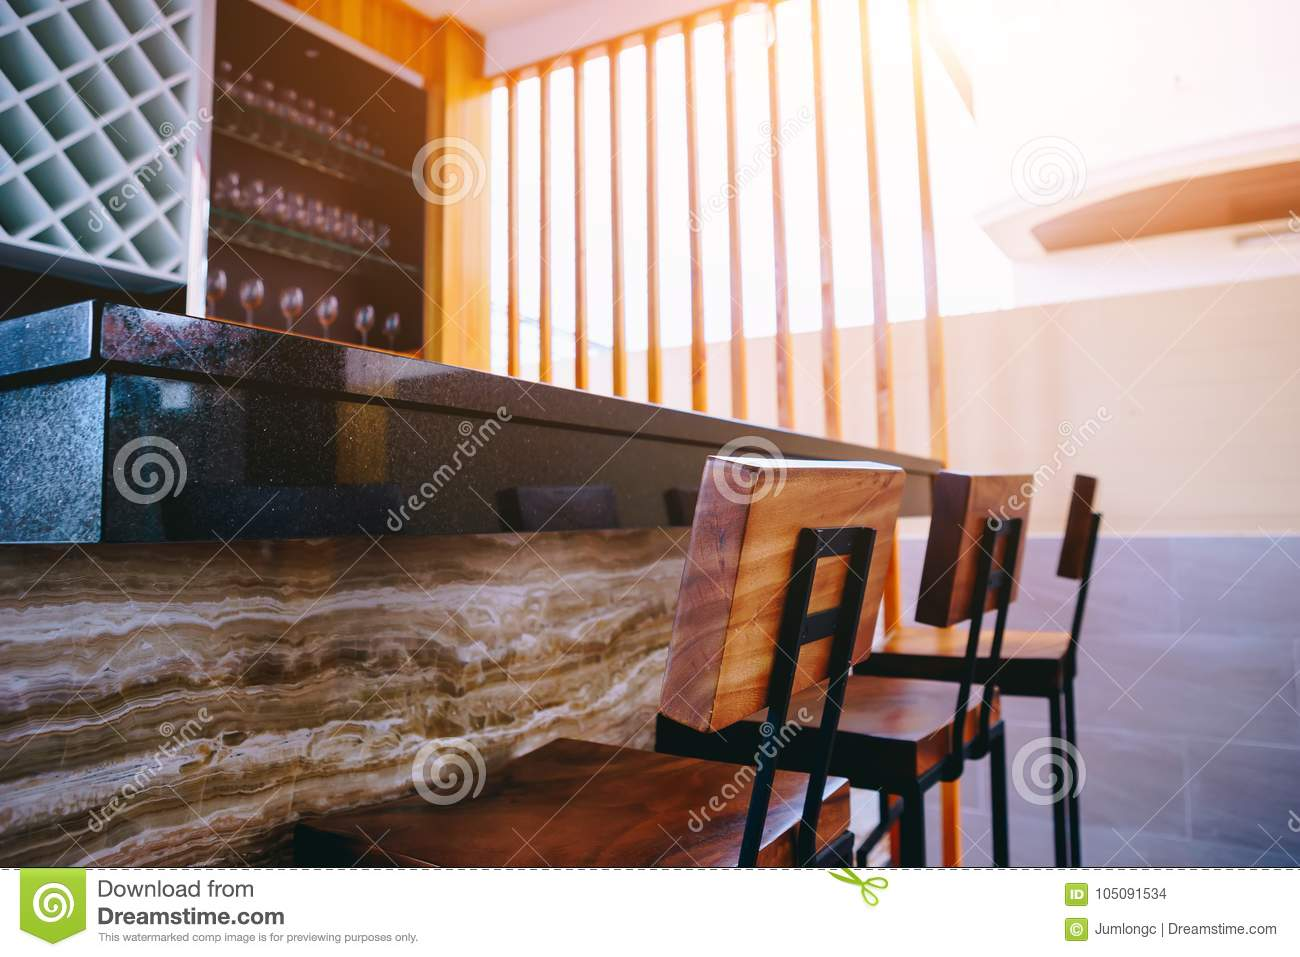 Drinking Counter And Bar In Sweet Home With Morning Light. Stock ...